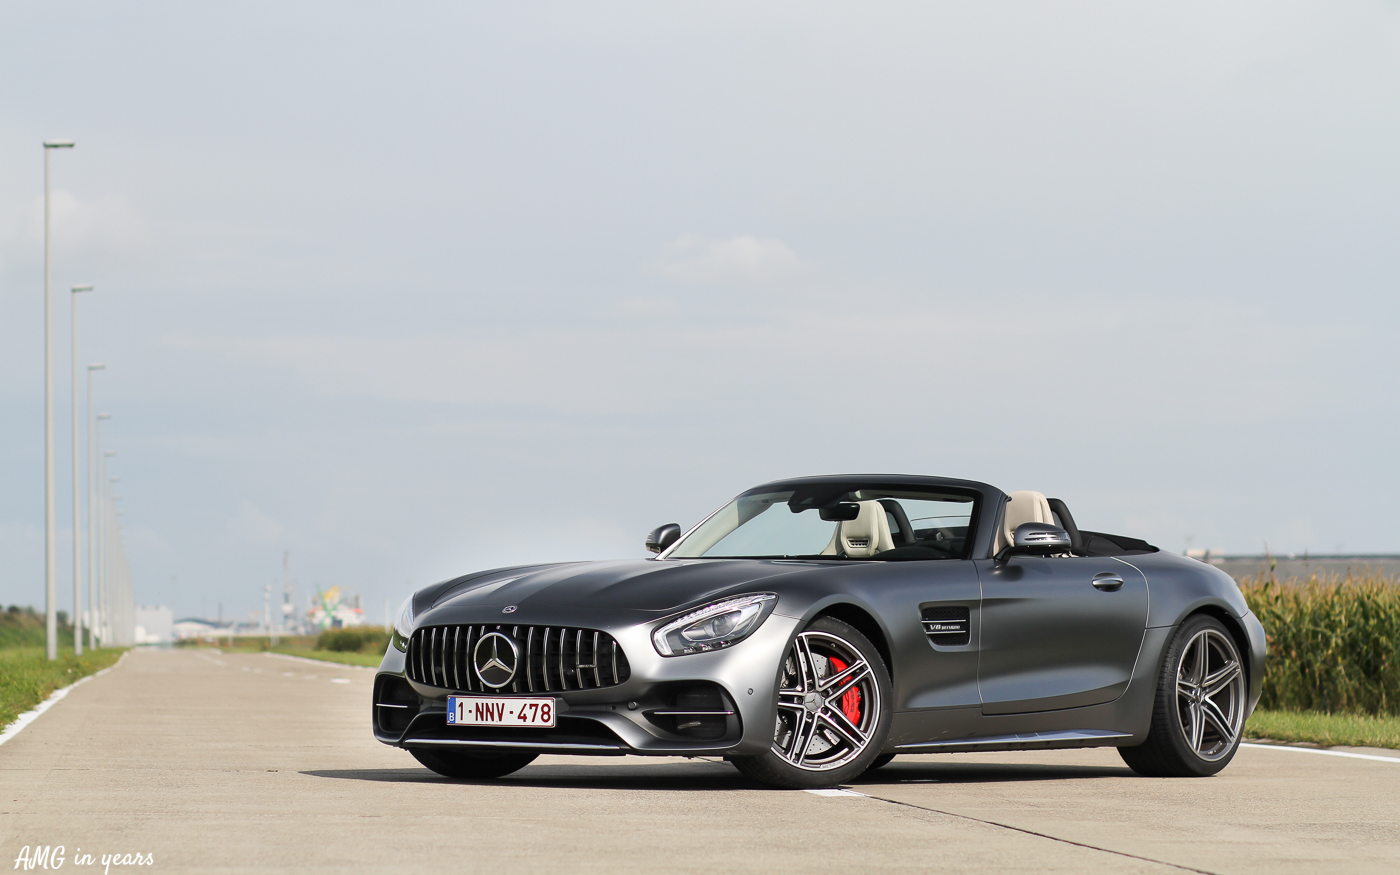 test drive amg gt c convertible amg in years. Black Bedroom Furniture Sets. Home Design Ideas